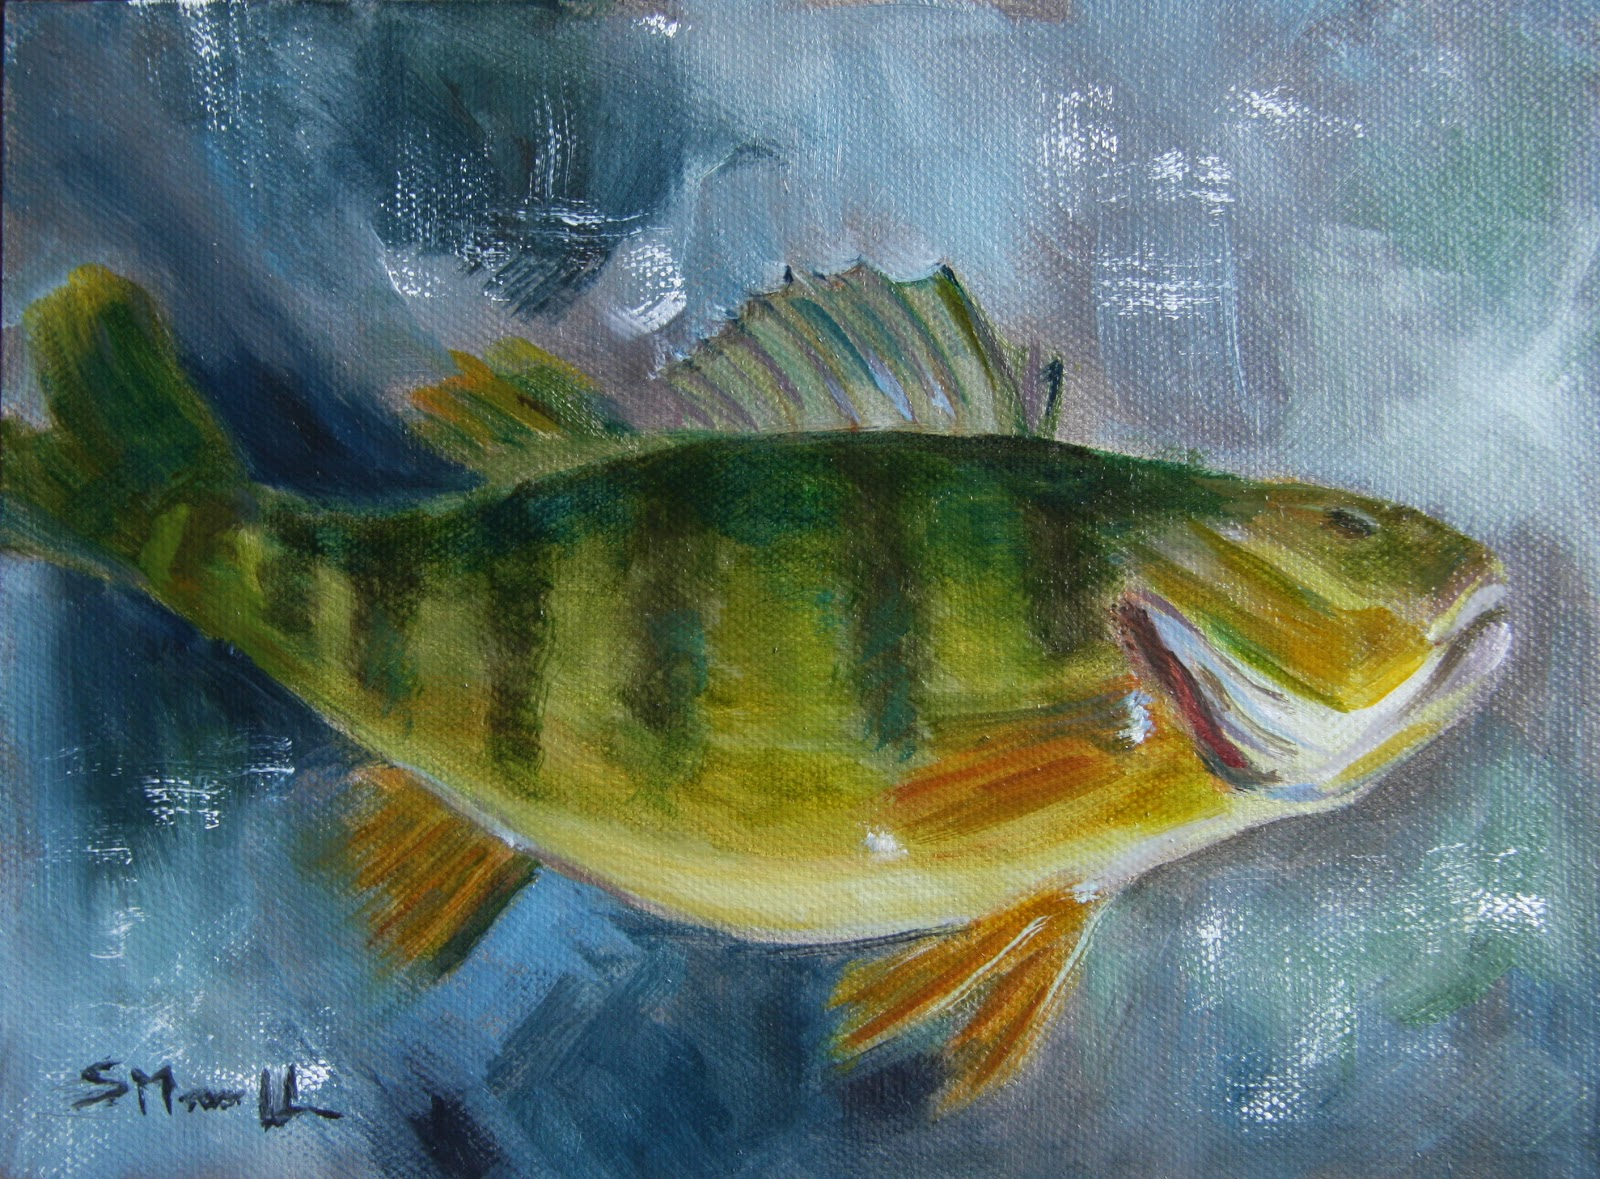 Daily painters of pennsylvania yellow perch by susie morrell for Hubbard lake mi fishing